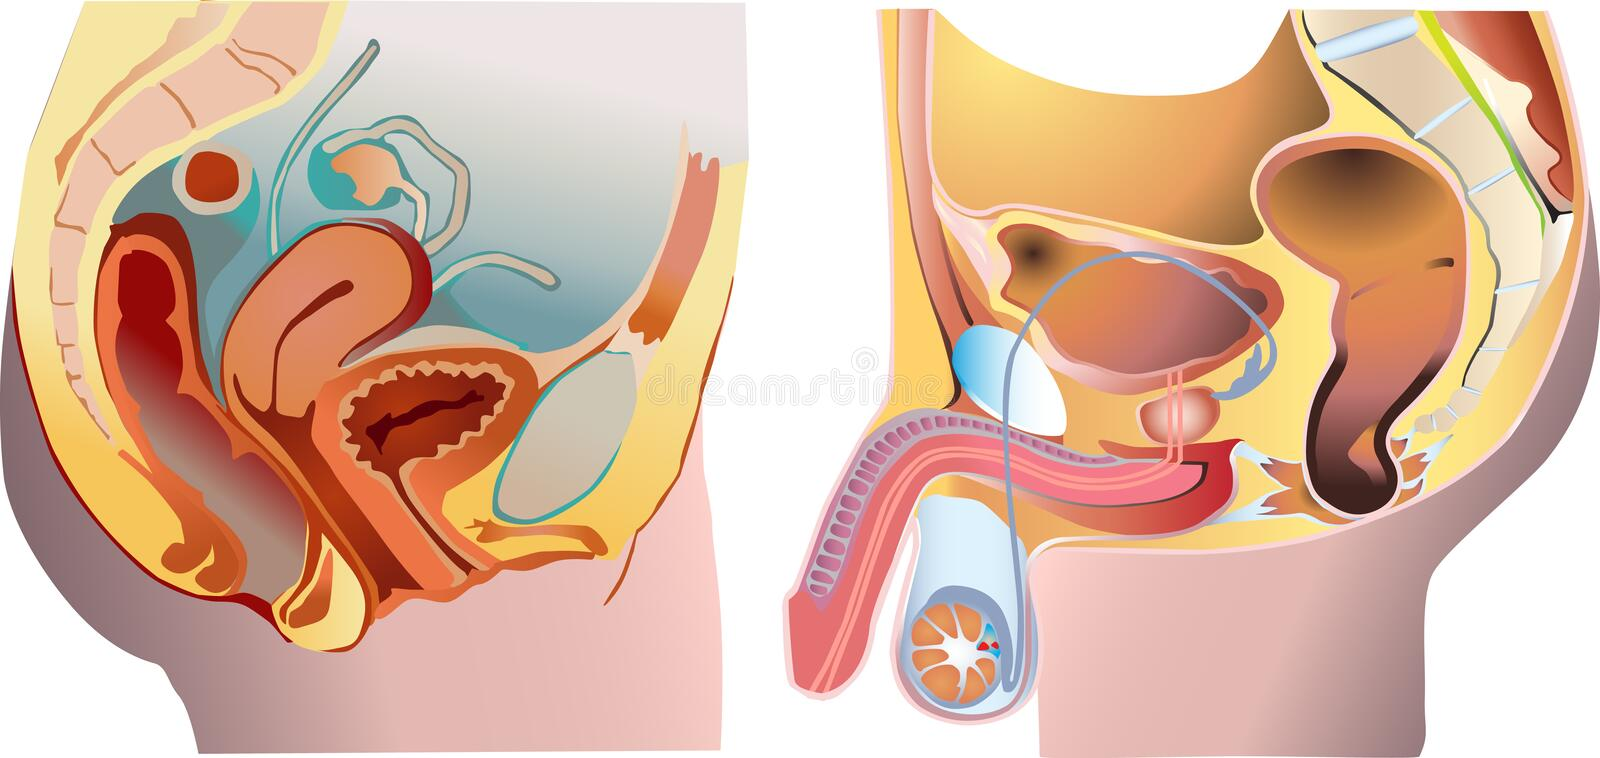 Male And Female Reproduction System Stock Vector Illustration Of